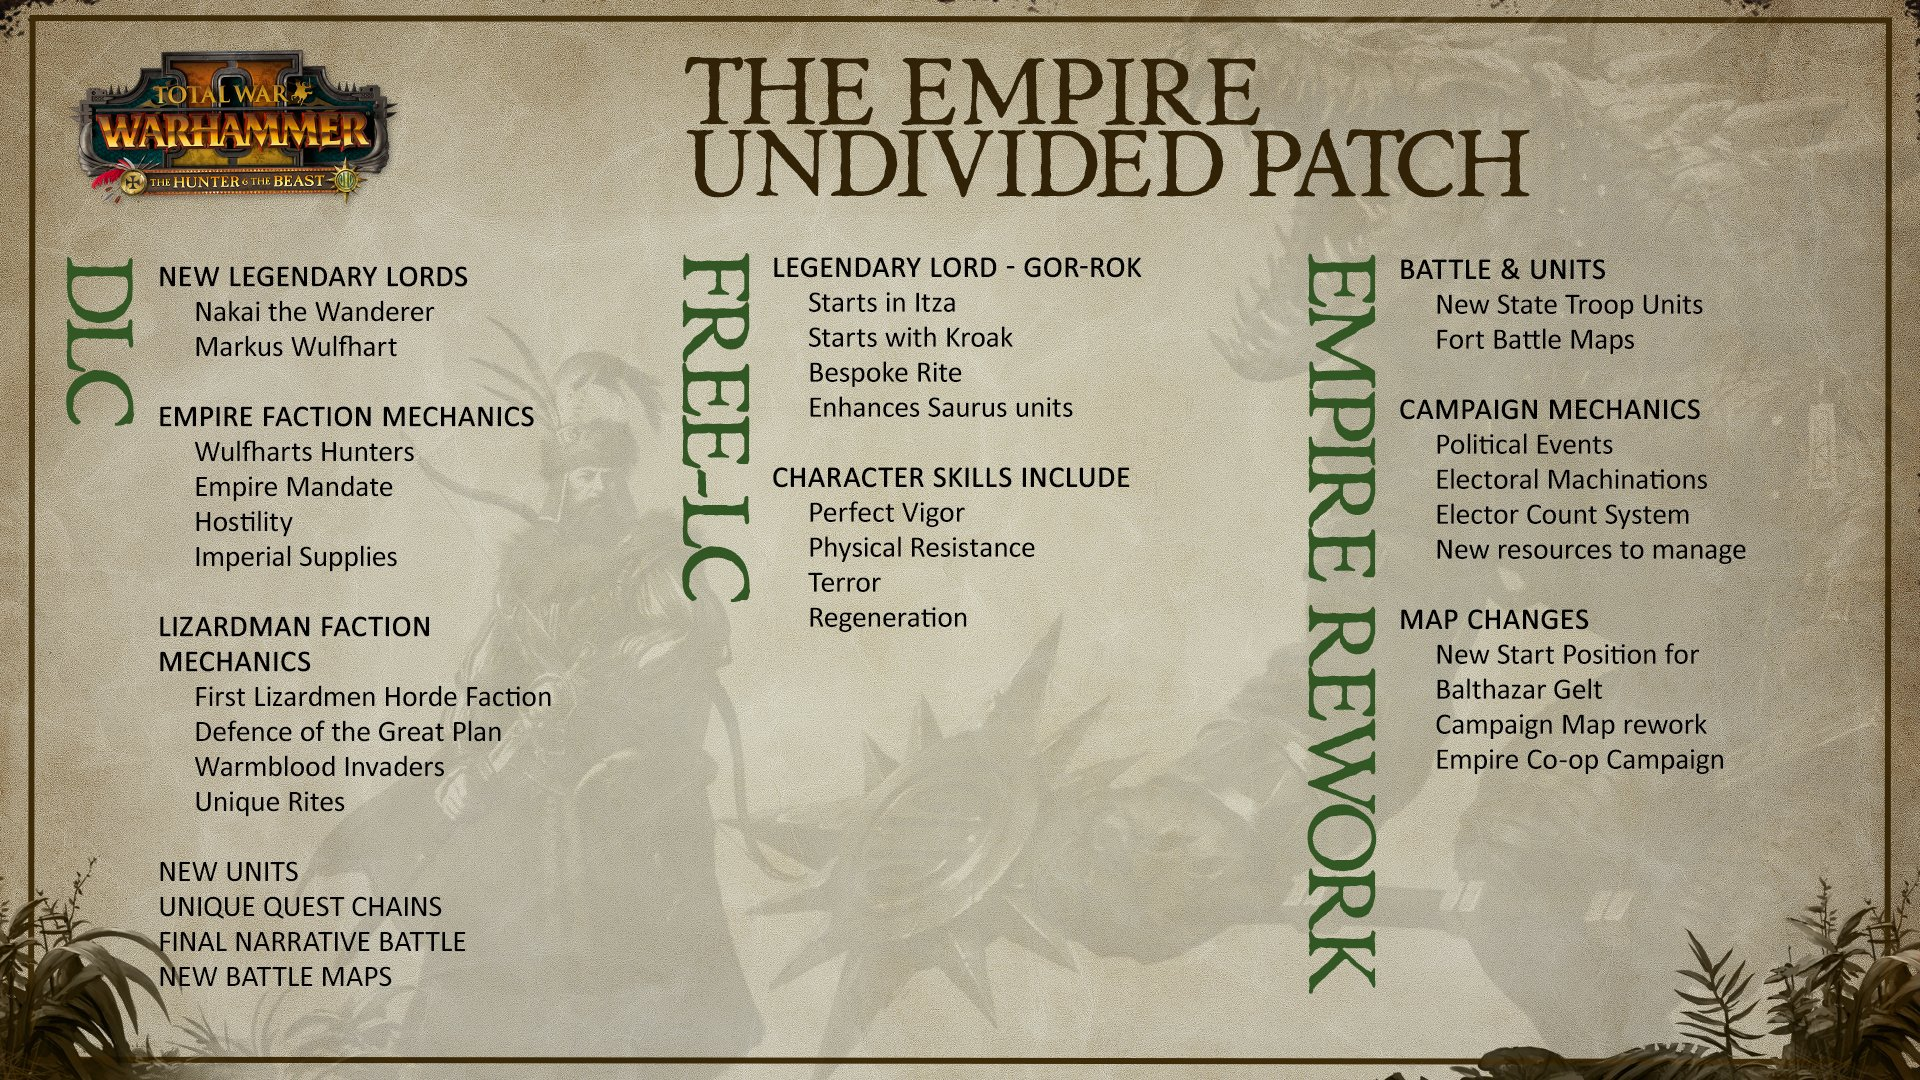 Total War On Twitter Confused About What S Coming In The Next Patch Got Your Dlc Mixed Up With Your Free Lc Take A Look At This Graphic To Find Out What Goes Where He can be randomly encountered in the wilderness and he often stops at inns to share his stories. total war on twitter confused about